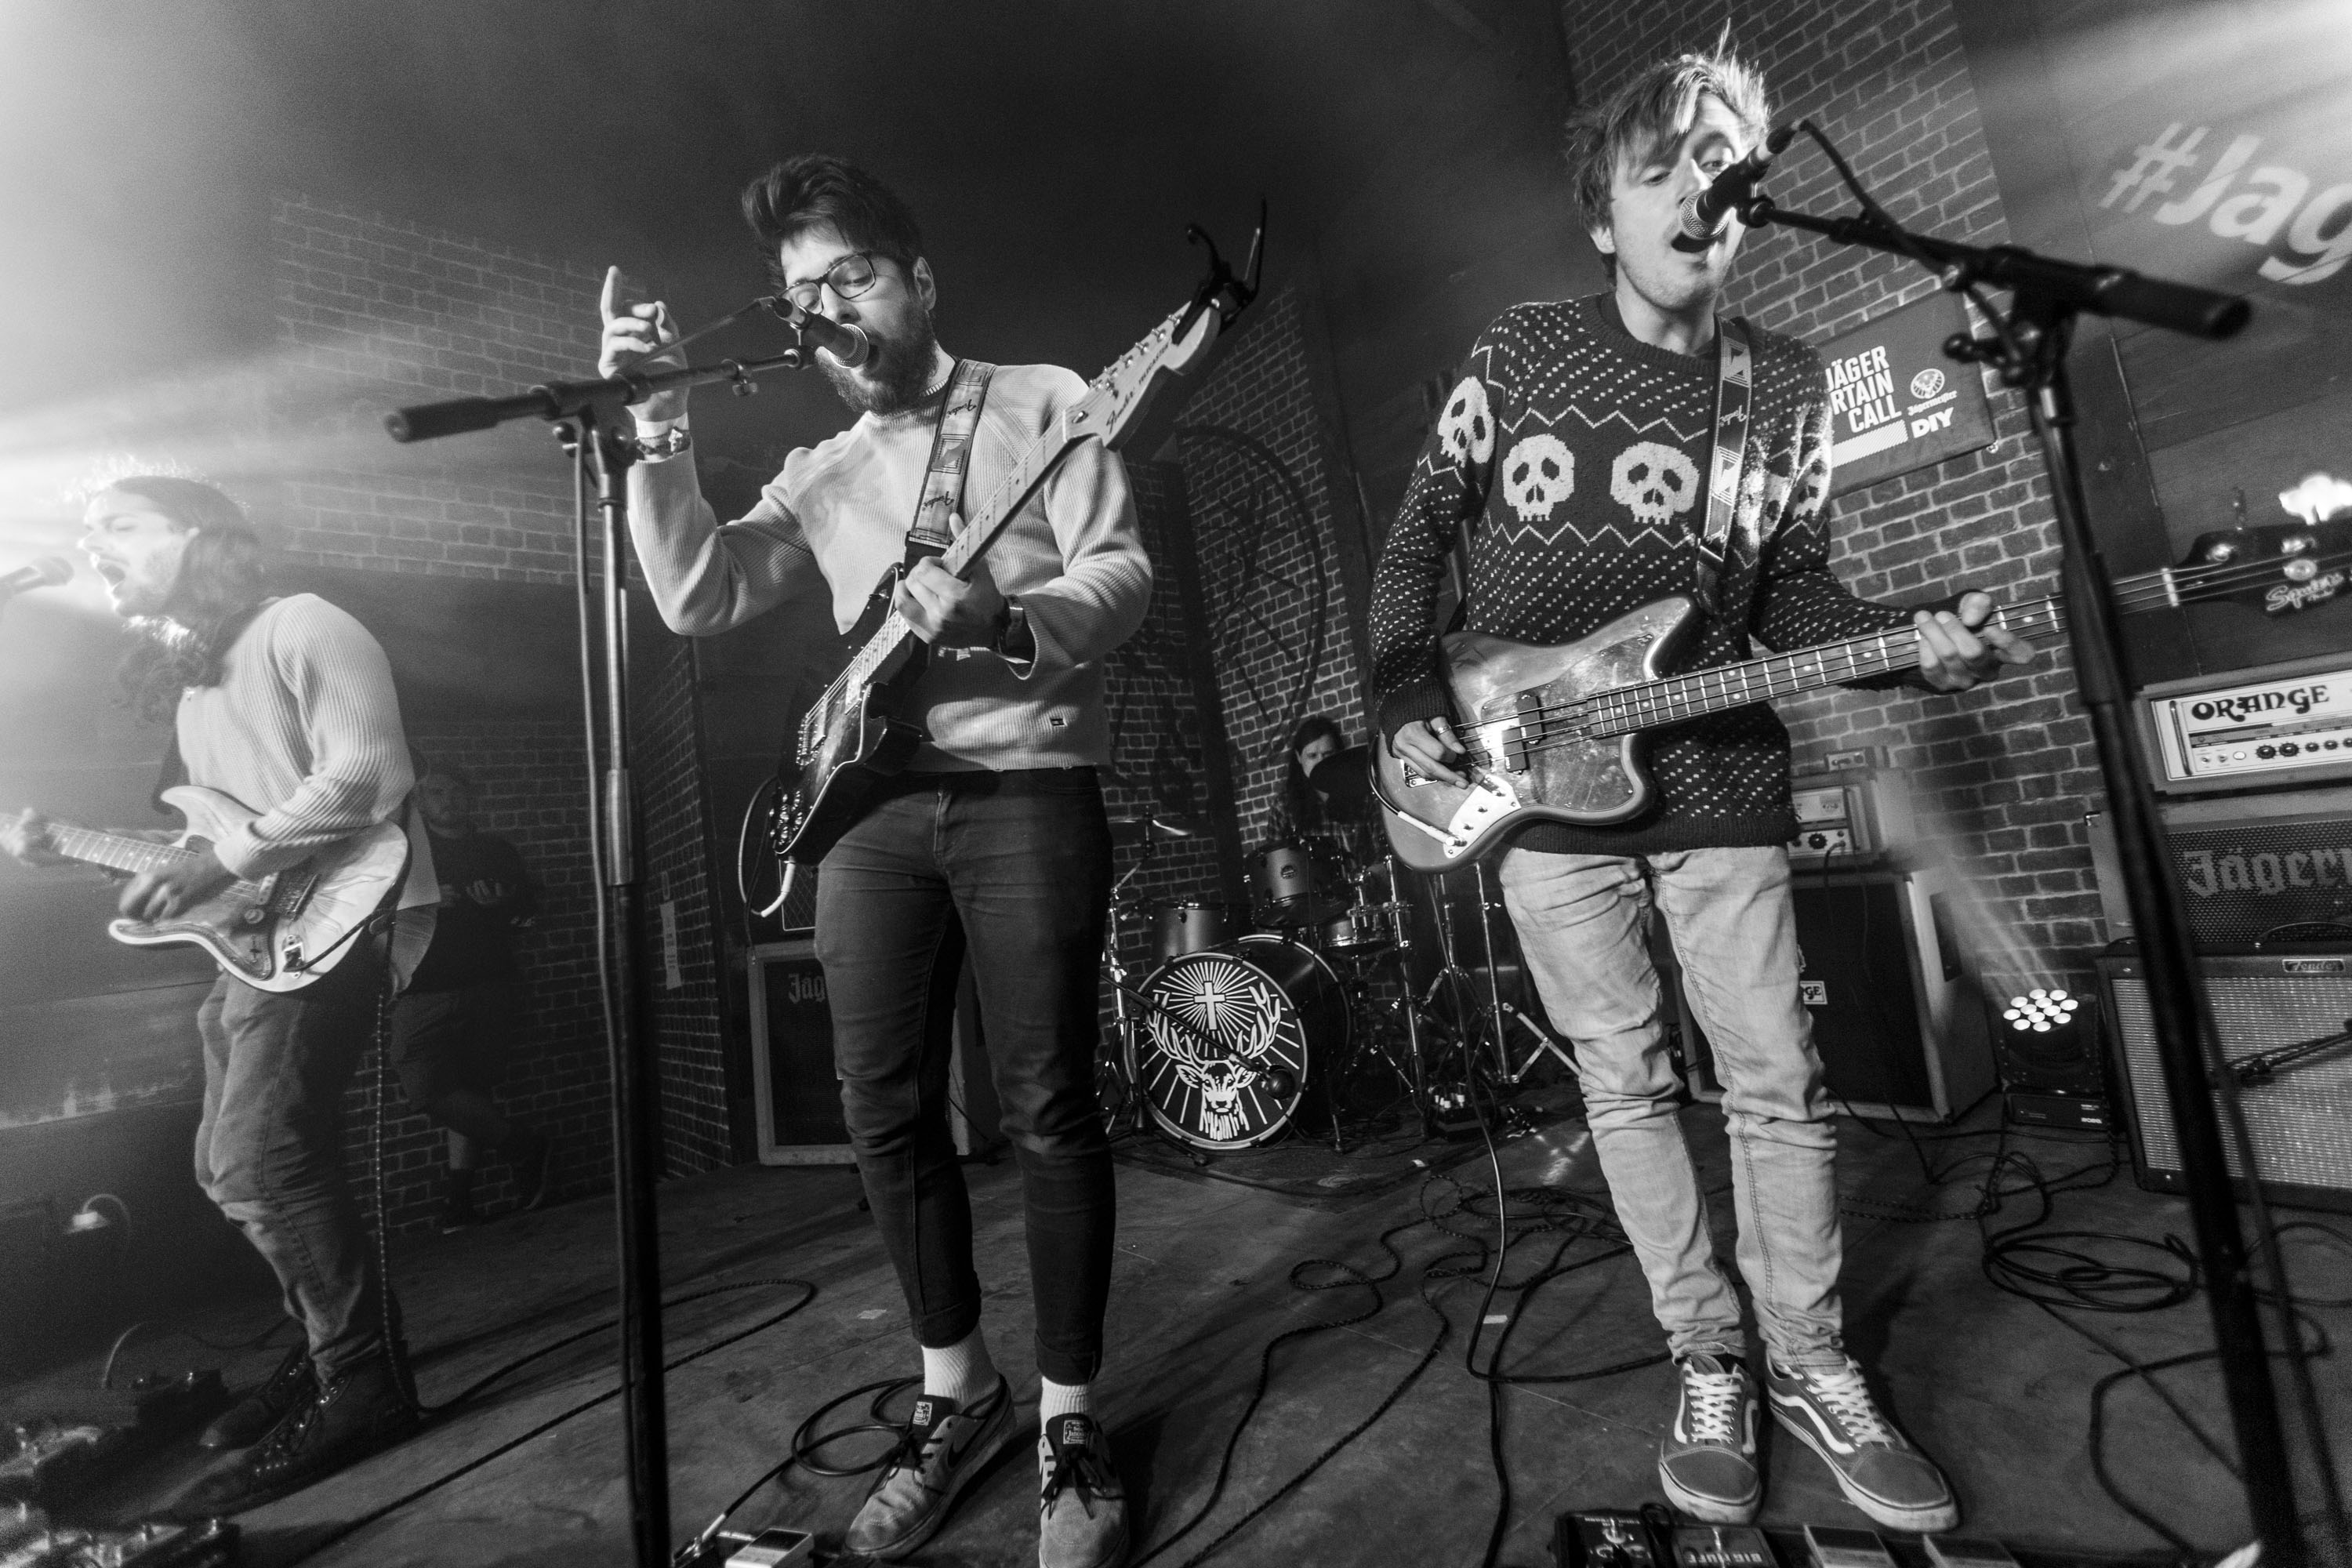 Kagoule, Muncie Girls, FUR and more bring Jäger Curtain Call to Bestival 2017